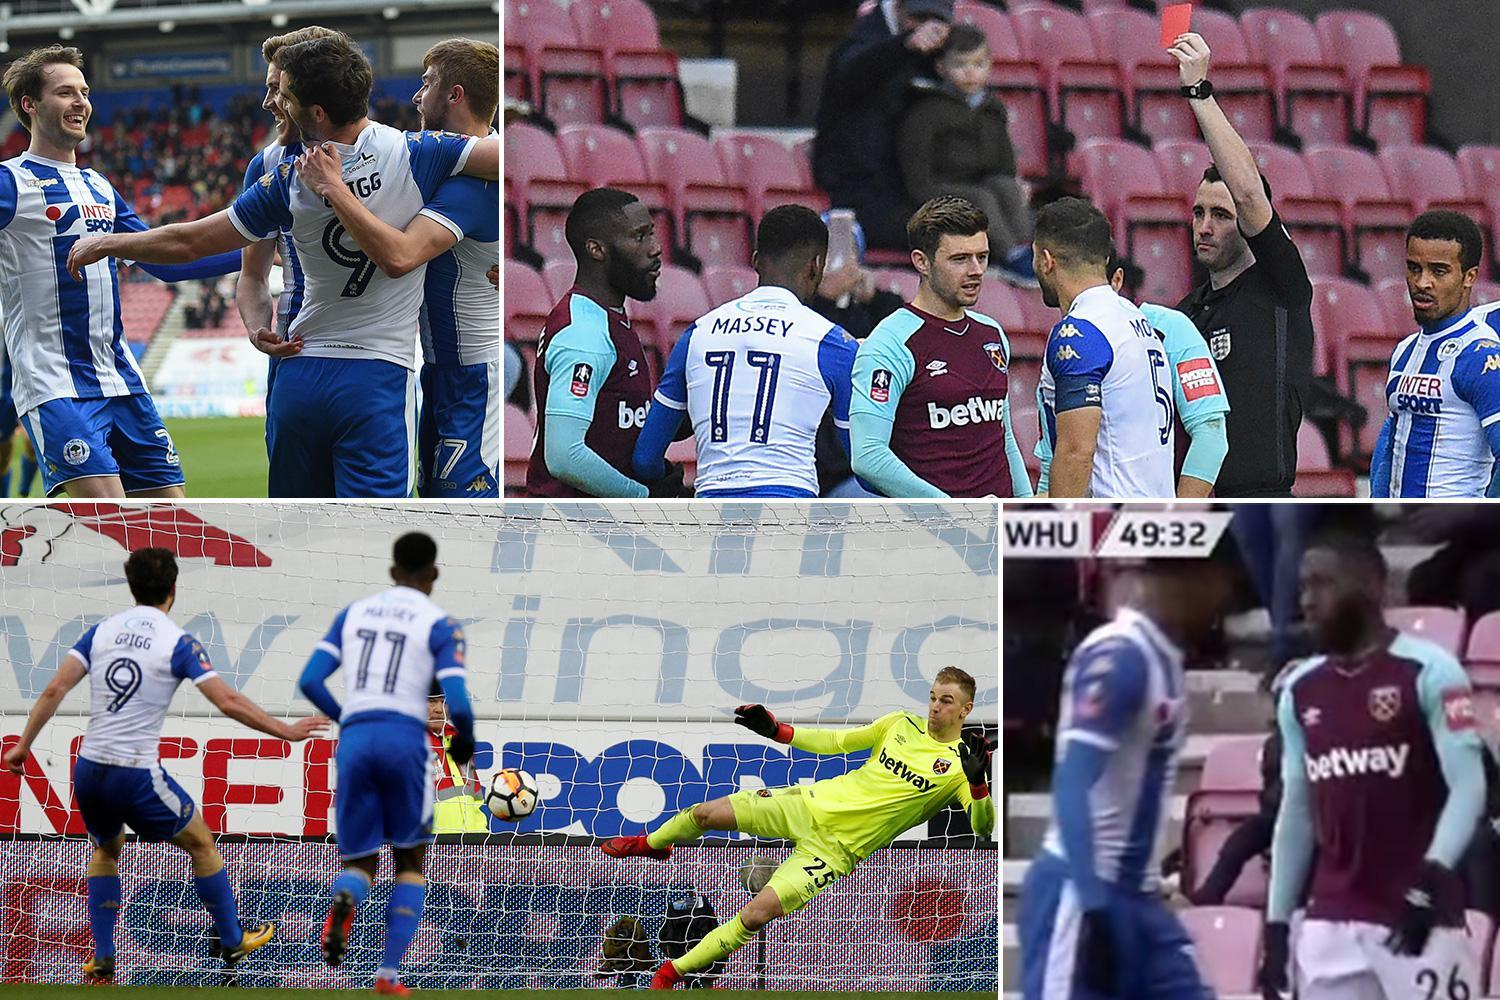 Wigan 2 West Ham 0: Will Grigg double sends Hammers crashing out with Arthur Masuaku sent off for spitting